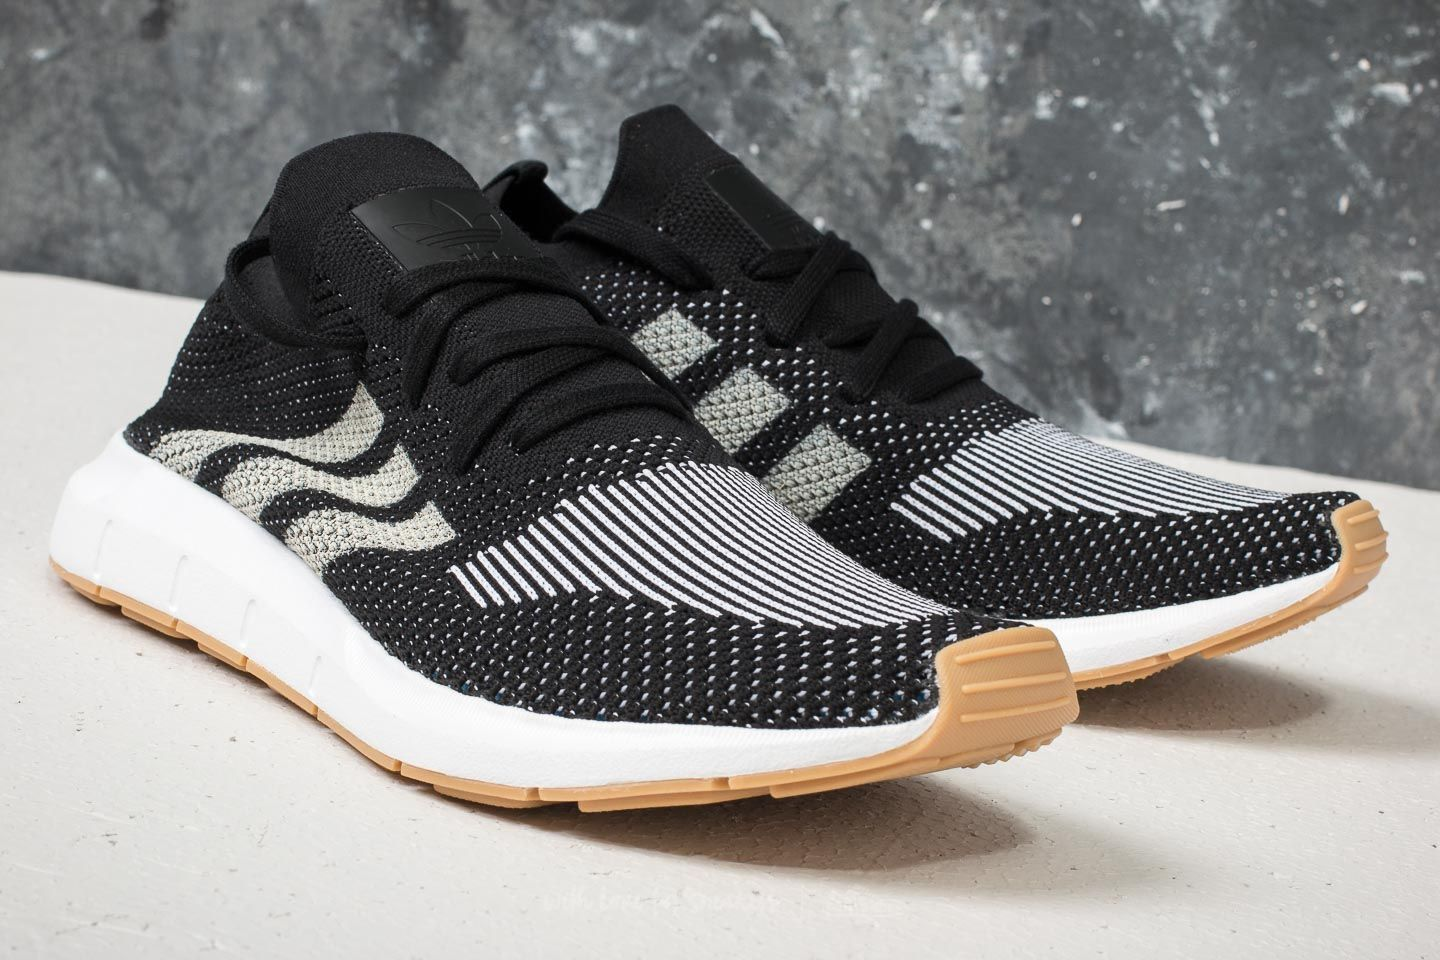 8c3549b0742 adidas Swift Run Primeknit Core Black/ Off White/ Ftw White | Footshop